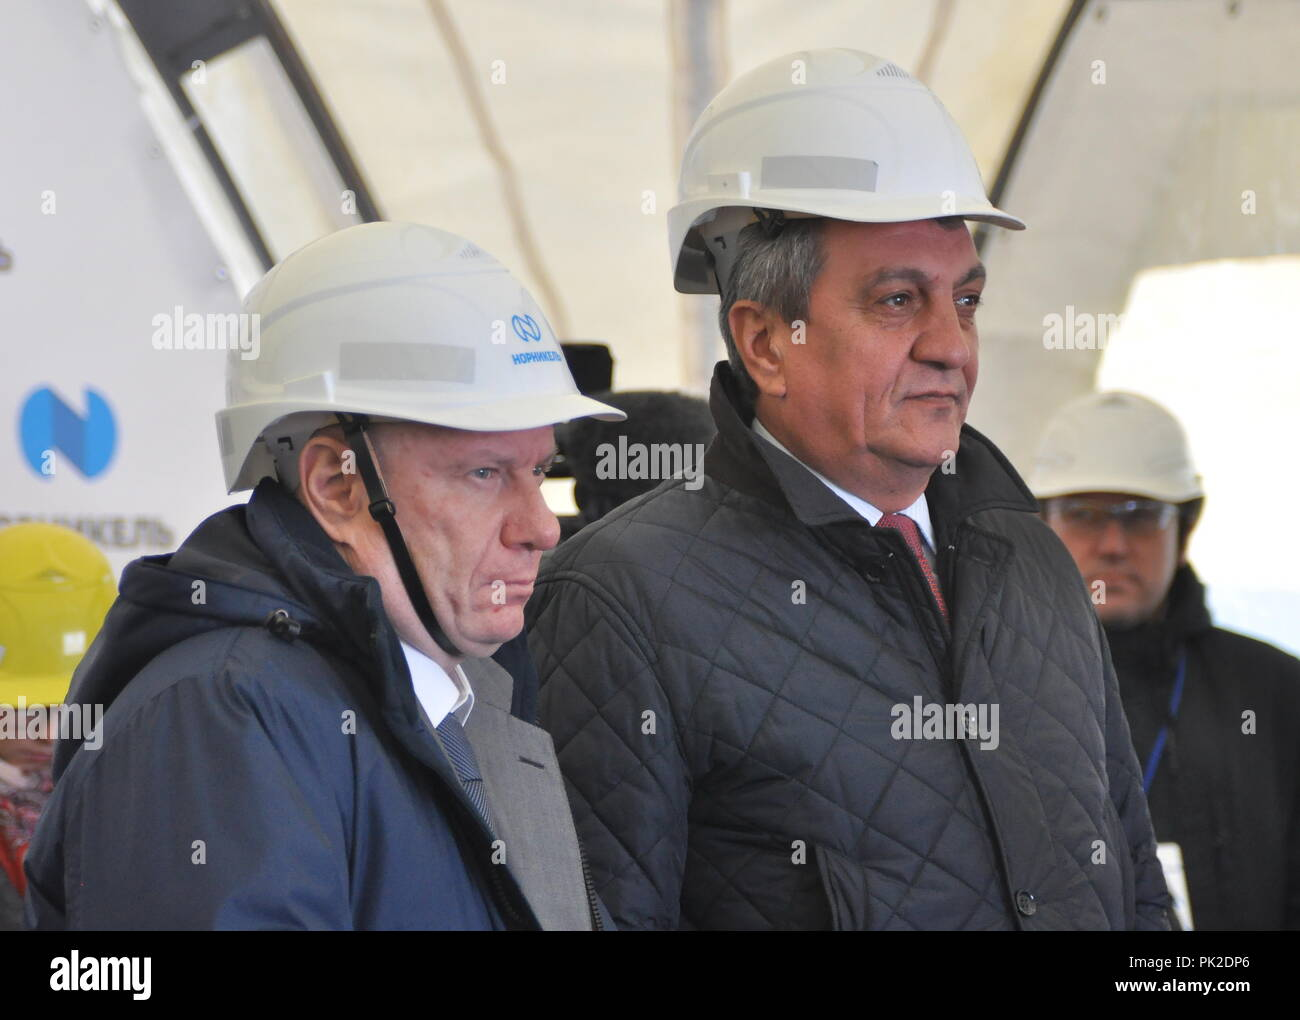 Norilsk, Russia. 10th Sep, 2018. NORILSK, RUSSIA - SEPTEMBER 10, 2018: MMC Norilsk Nickel President and Board Chairman Vladimir Potanin (L) and Sergei Menyailo, Presidential Envoy to Russia's Siberian Federal District, launch a project aimed at reducing sulfur dioxide emissions, at a copper plant of MMC Norilsk Nickel. Denis Kozhevnikov/TASS Credit: ITAR-TASS News Agency/Alamy Live News - Stock Image